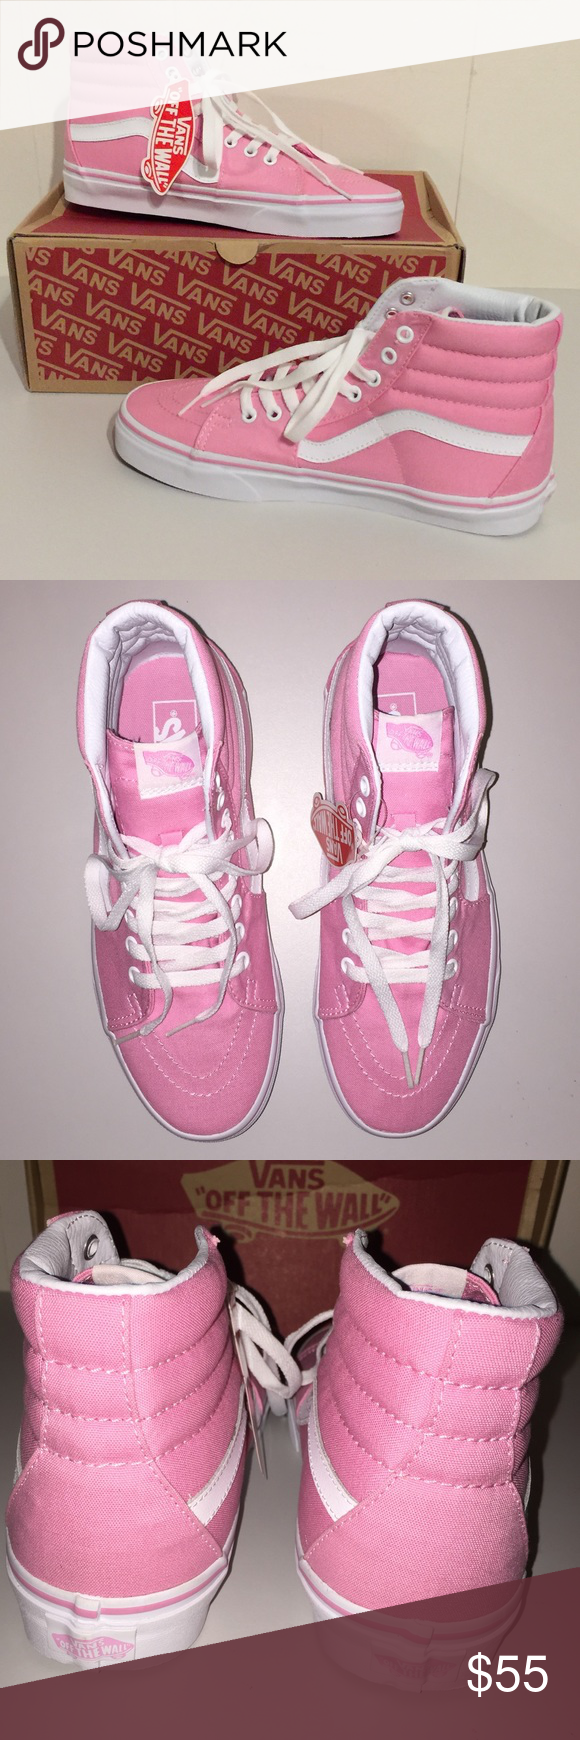 50d92fb144c628 NWT Vans SK8-Hi Canvas Prism Pink Spice up your outfit with these pretty pink  shoes. Unisex  M 8.0 W 9.5 PRICE IS FIRM. Vans Shoes Sneakers